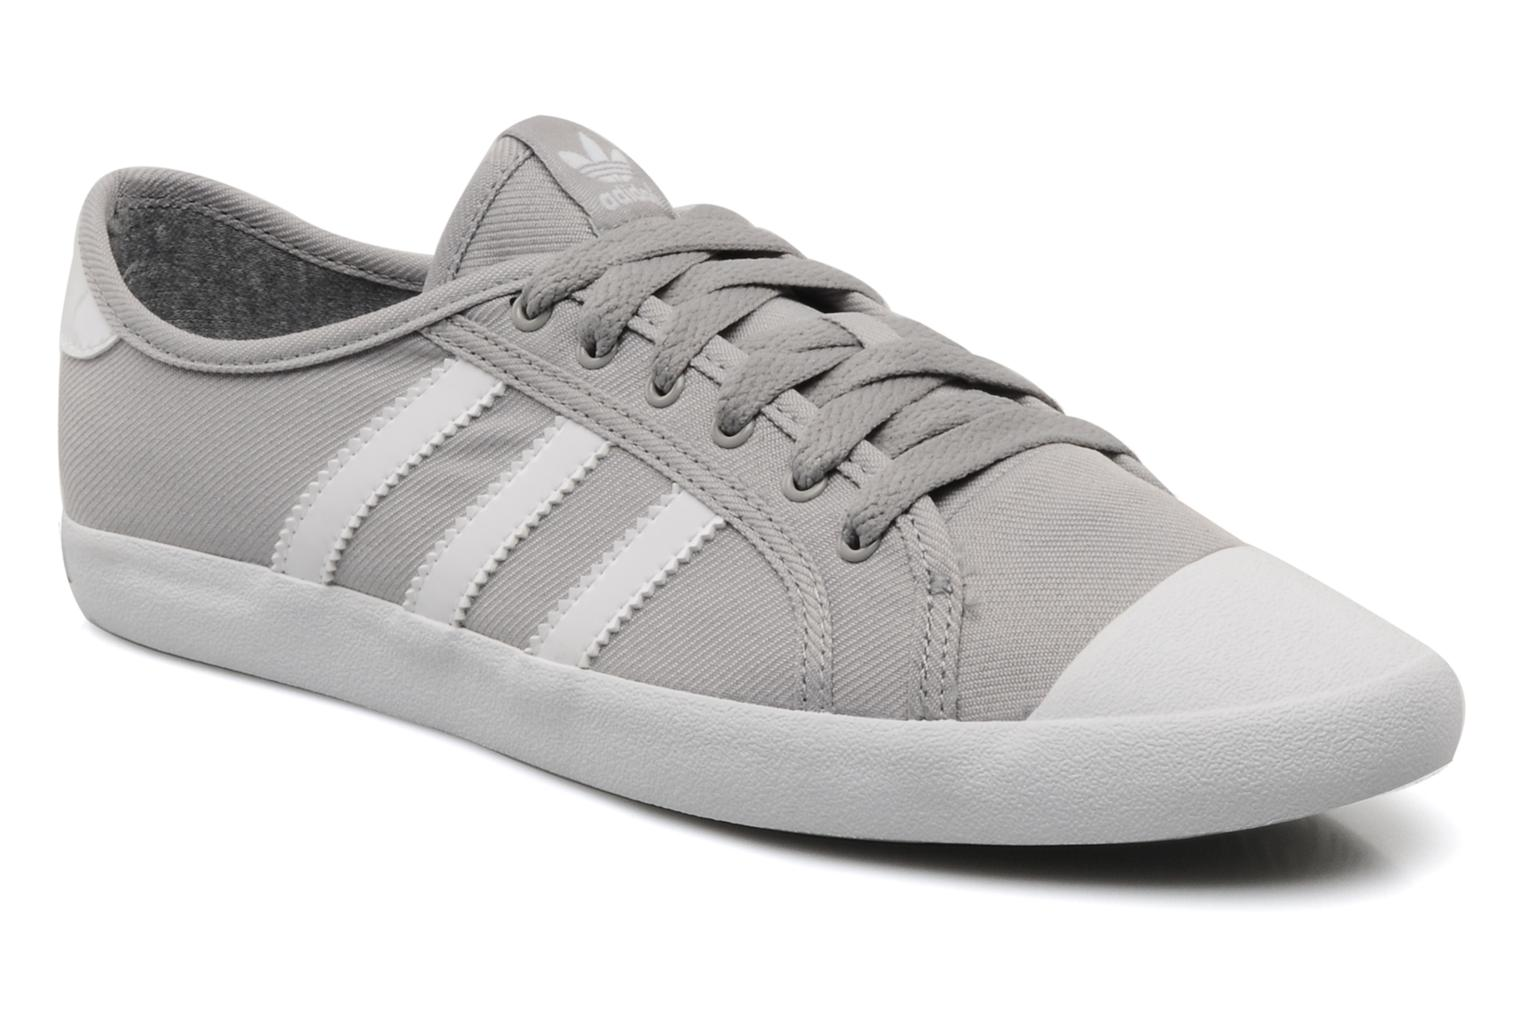 adidas Adria Low Sleek G64066, Baskets Mode Homme Taille